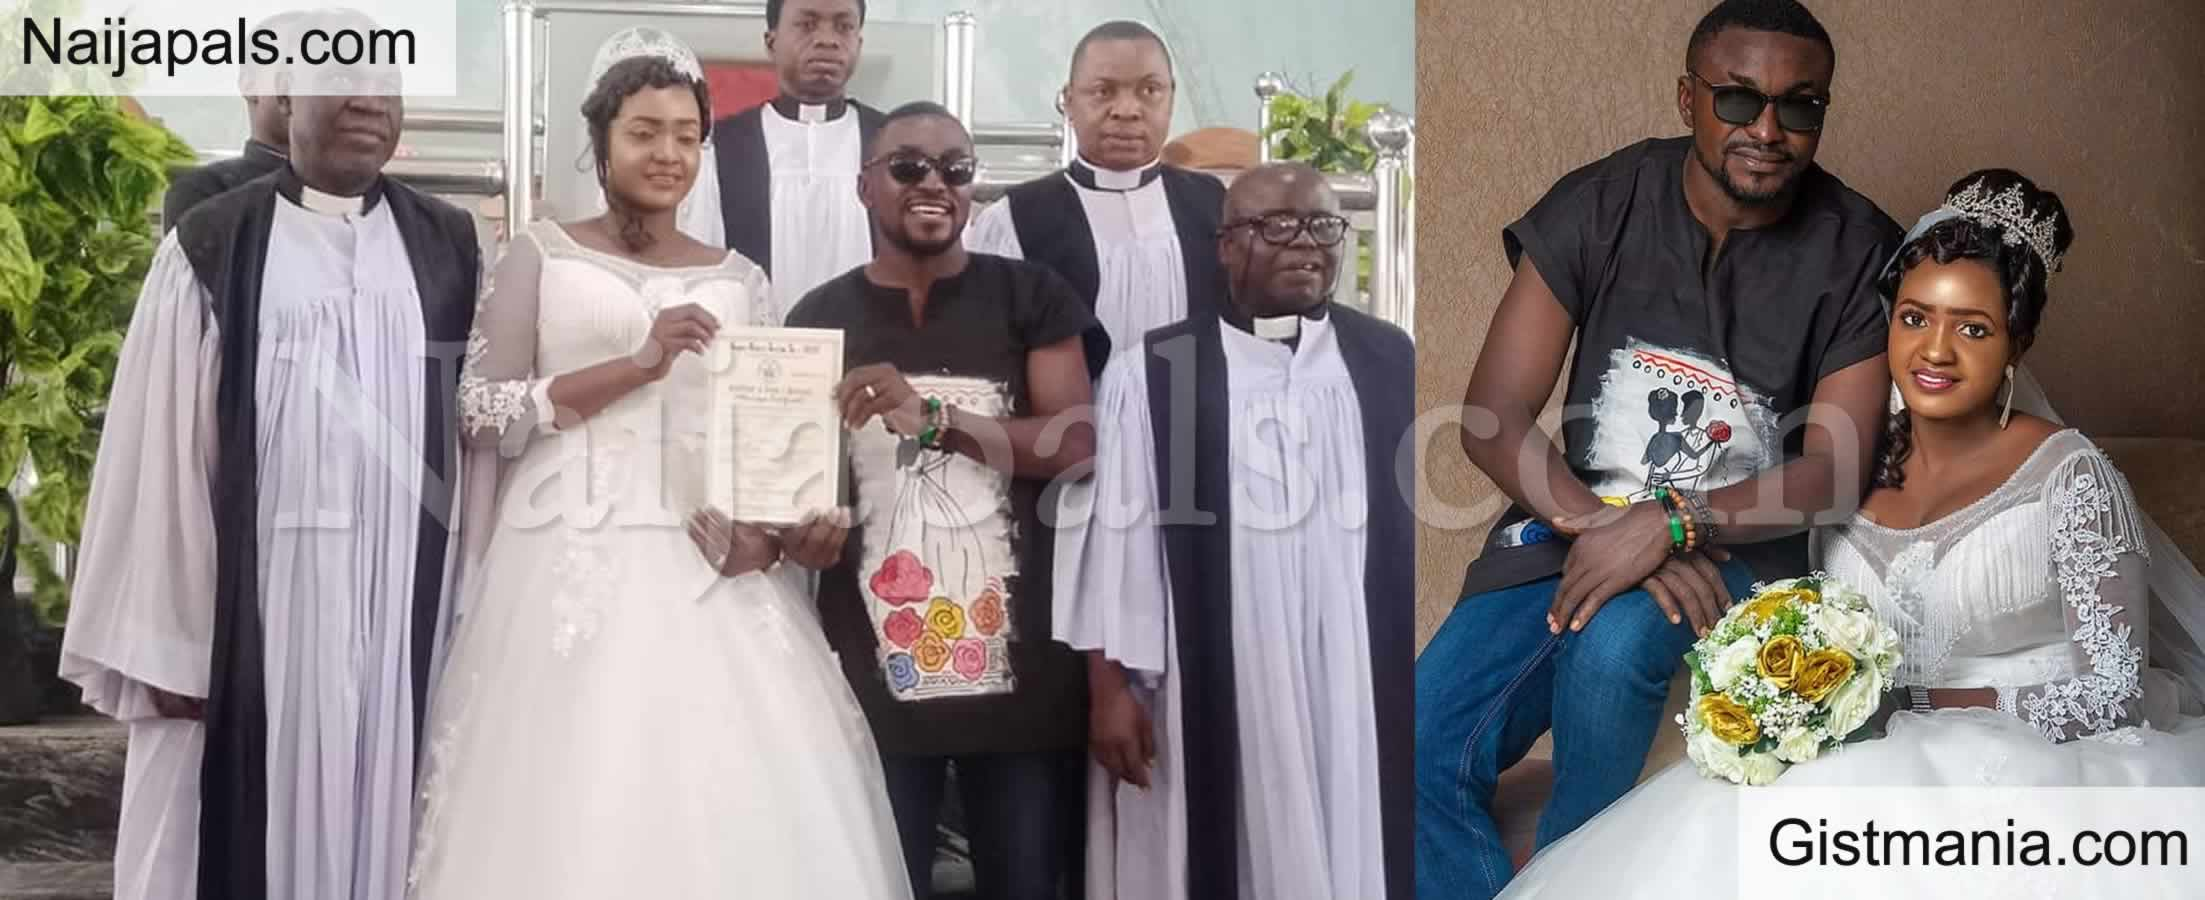 <img alt='.' class='lazyload' data-src='https://img.gistmania.com/emot/comment.gif' /> <b>Nigerian Man Who Wore Jeans and Dashiki Shirt to His Wedding Has This to Say About His Outfit</b>